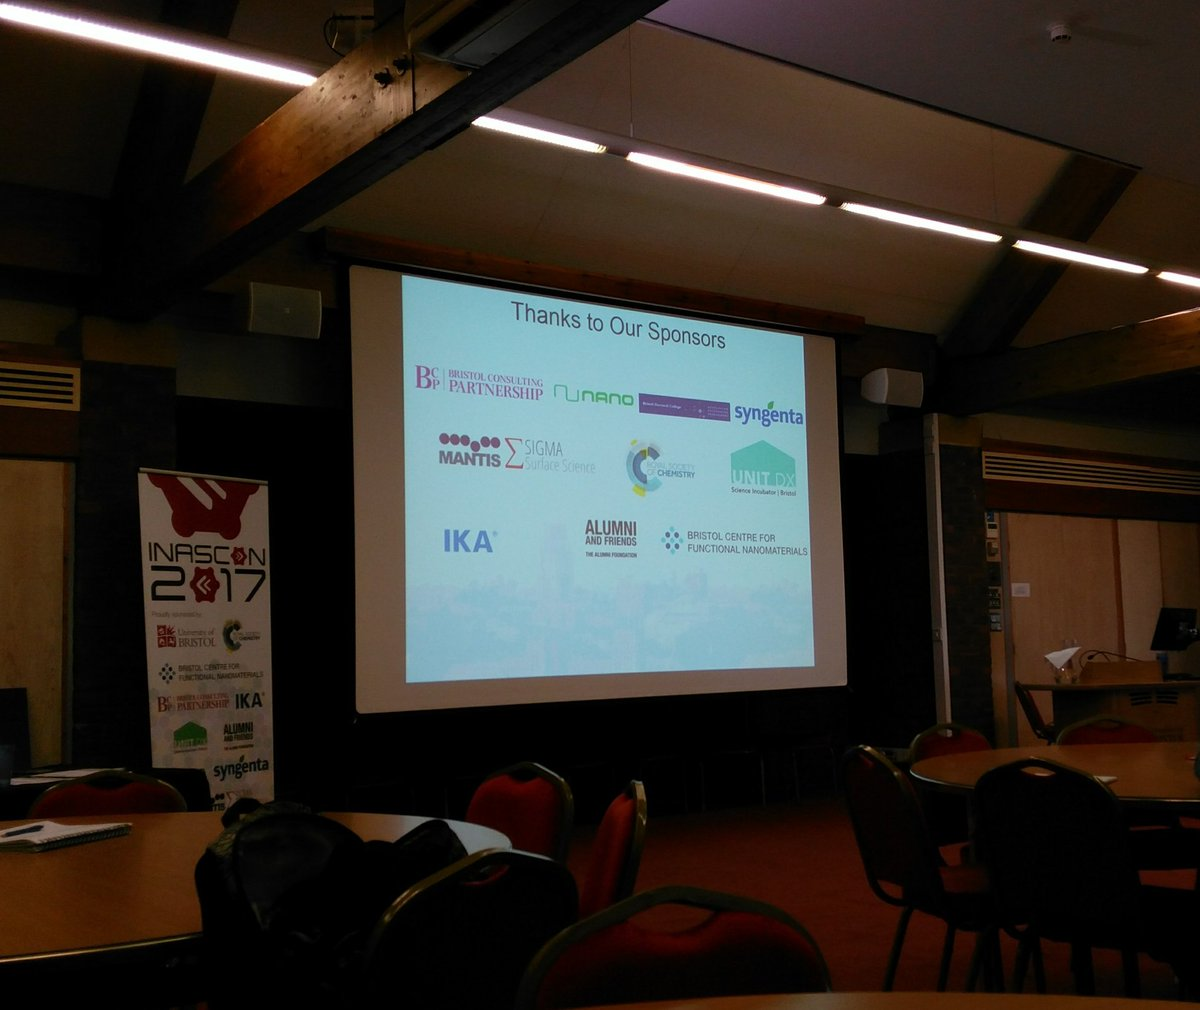 Today we&#39;re @INASCON17 looking forward to some interesting talks #inascon17 #conference #Bristol<br>http://pic.twitter.com/NJVZCAdYHy